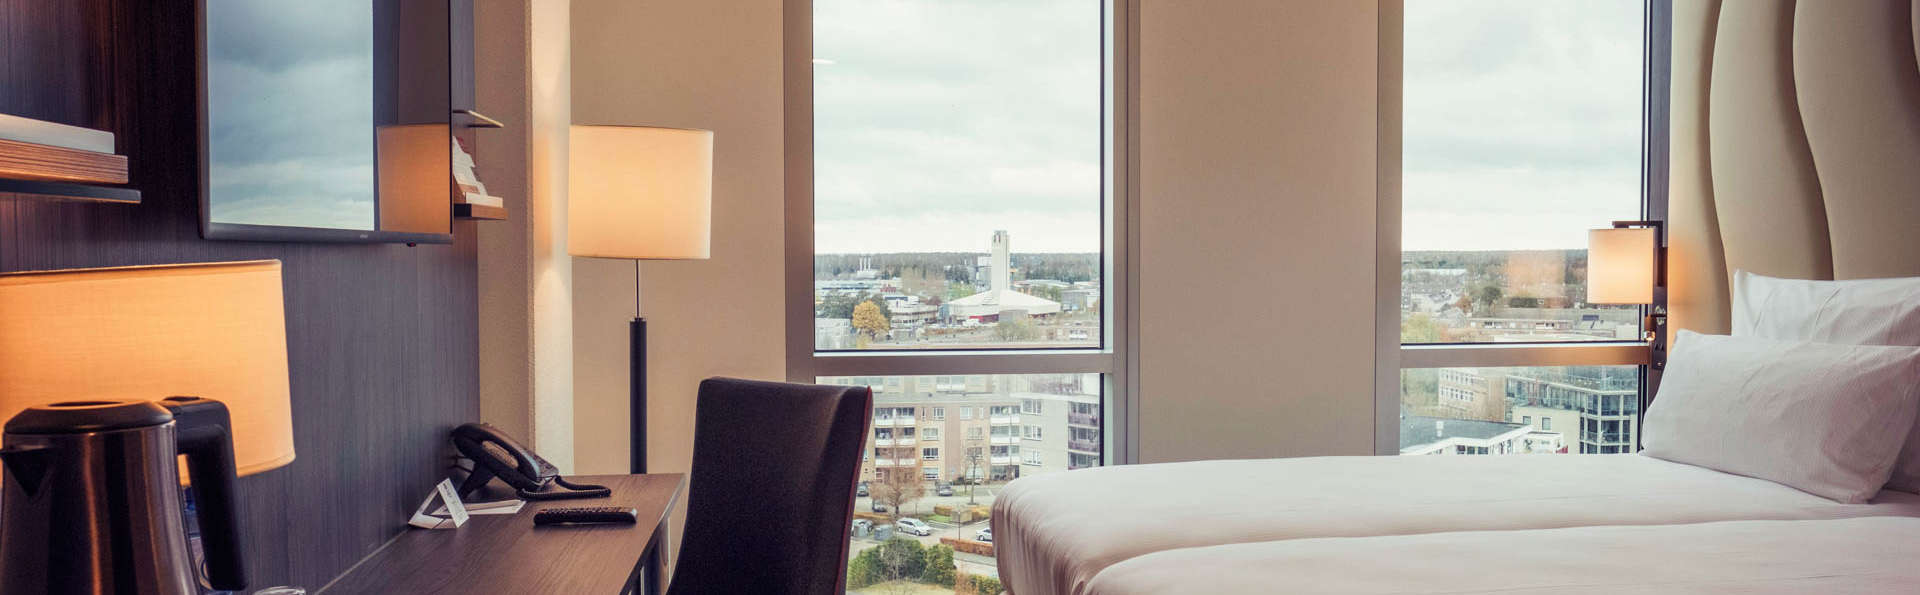 Best Western Plus Plaza Almere - EDIT_NEW_ROOM-4.jpg